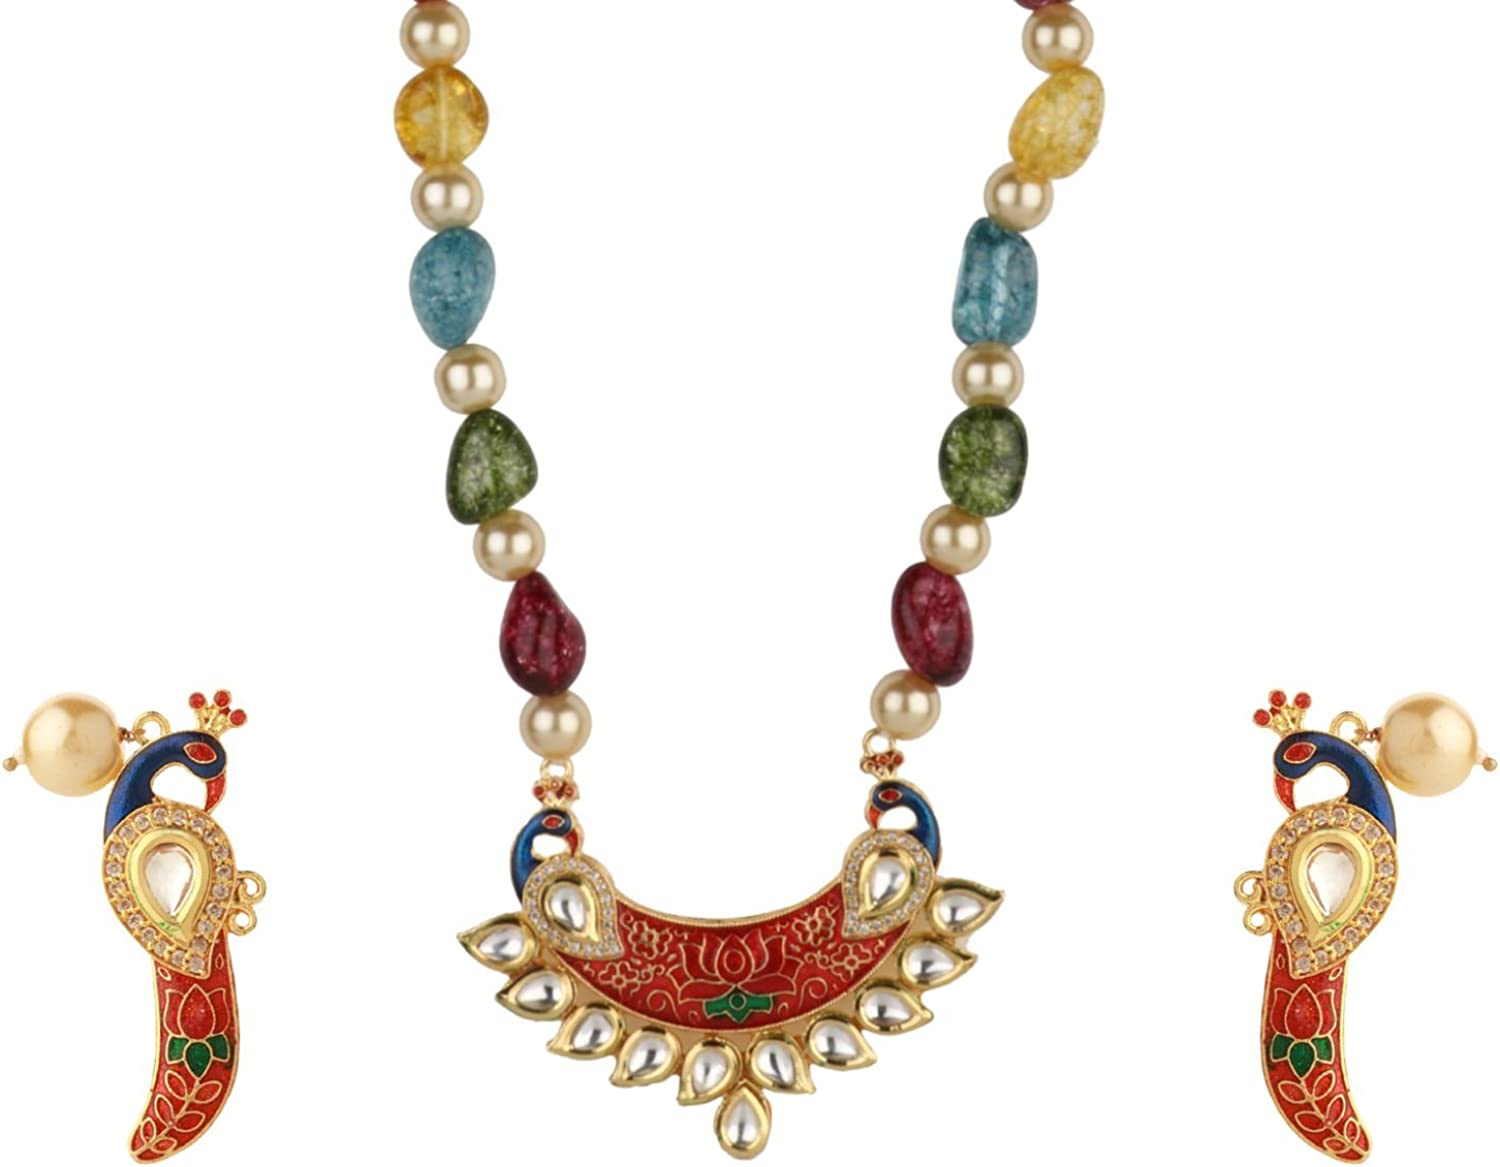 Efulgenz Boho Indian Bollywood Antique Gold Plated Faux Pearl Beaded Bridal Wedding Strand Statement Necklace Earrings Jewelry Set (Color Options) (Multicolor)